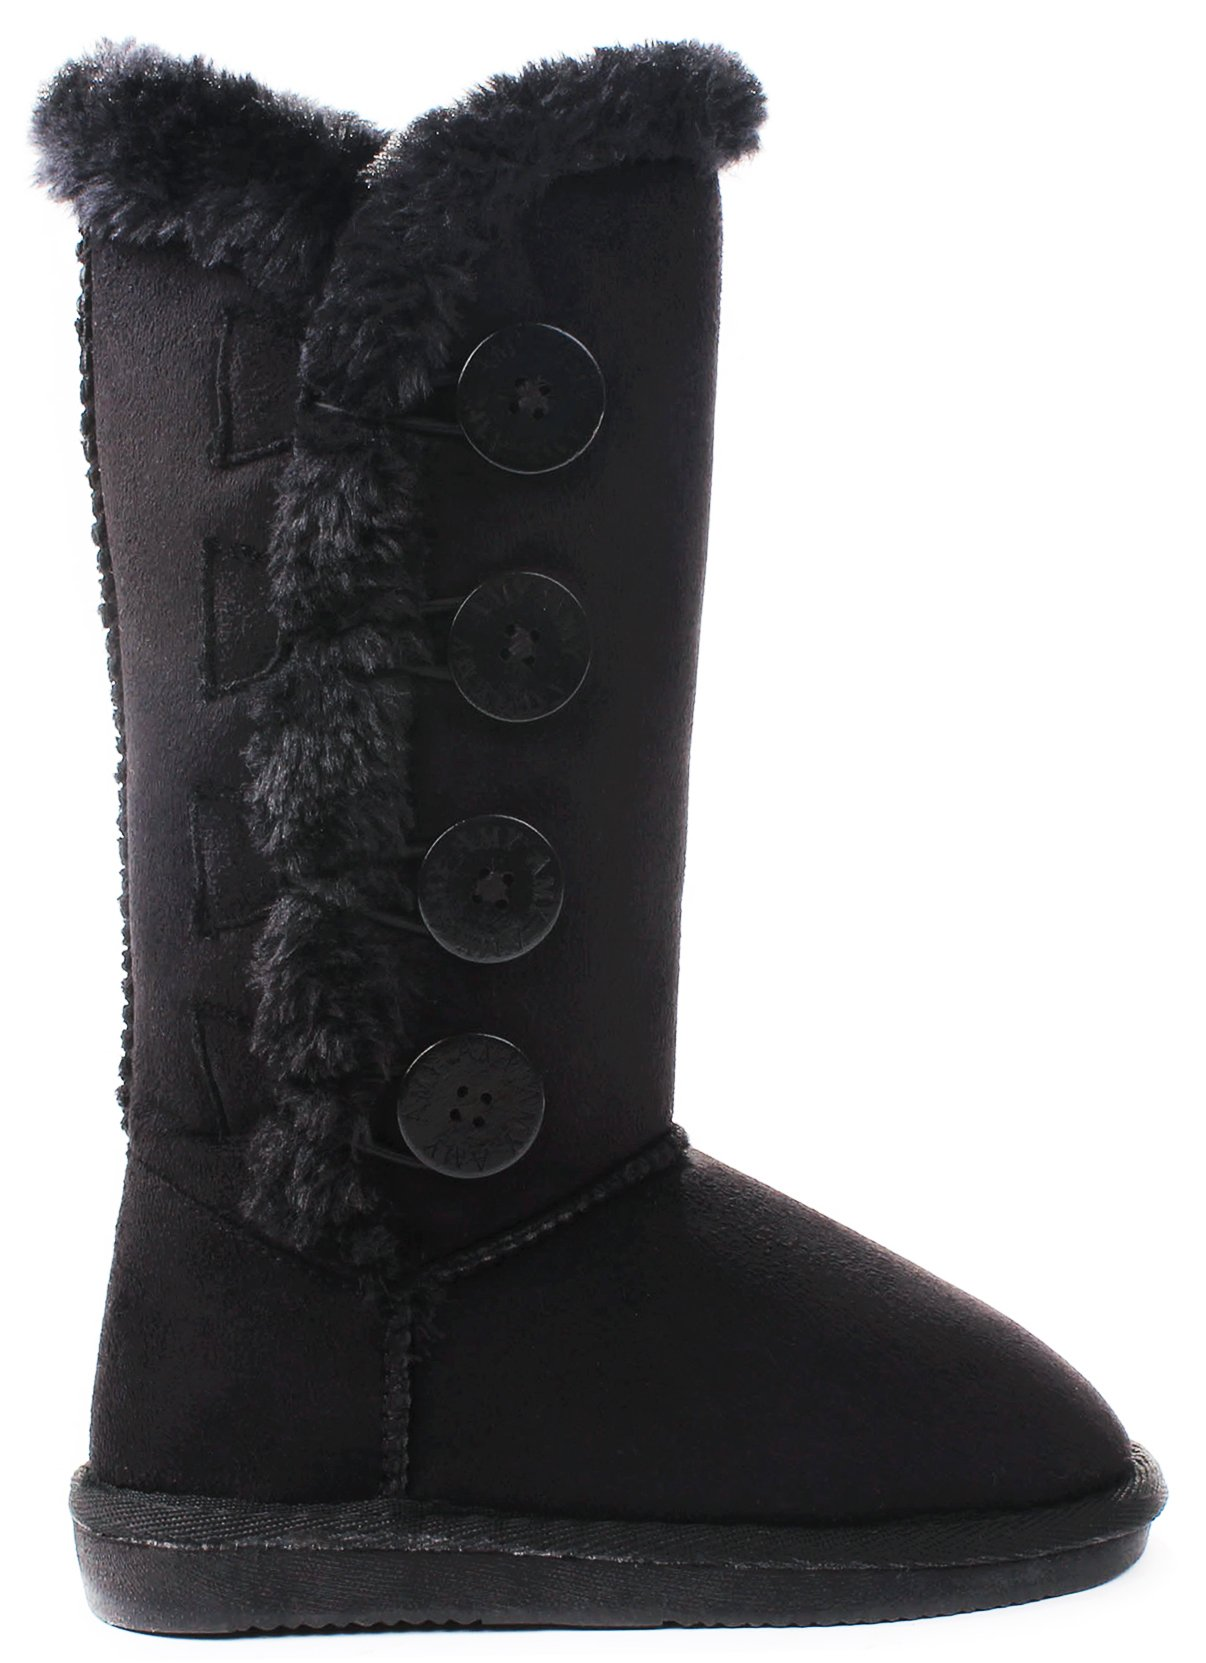 Kids Girls Amy Black Wooden Button Faux Fur Lined Shearling Mid Calf Winter Boots-12